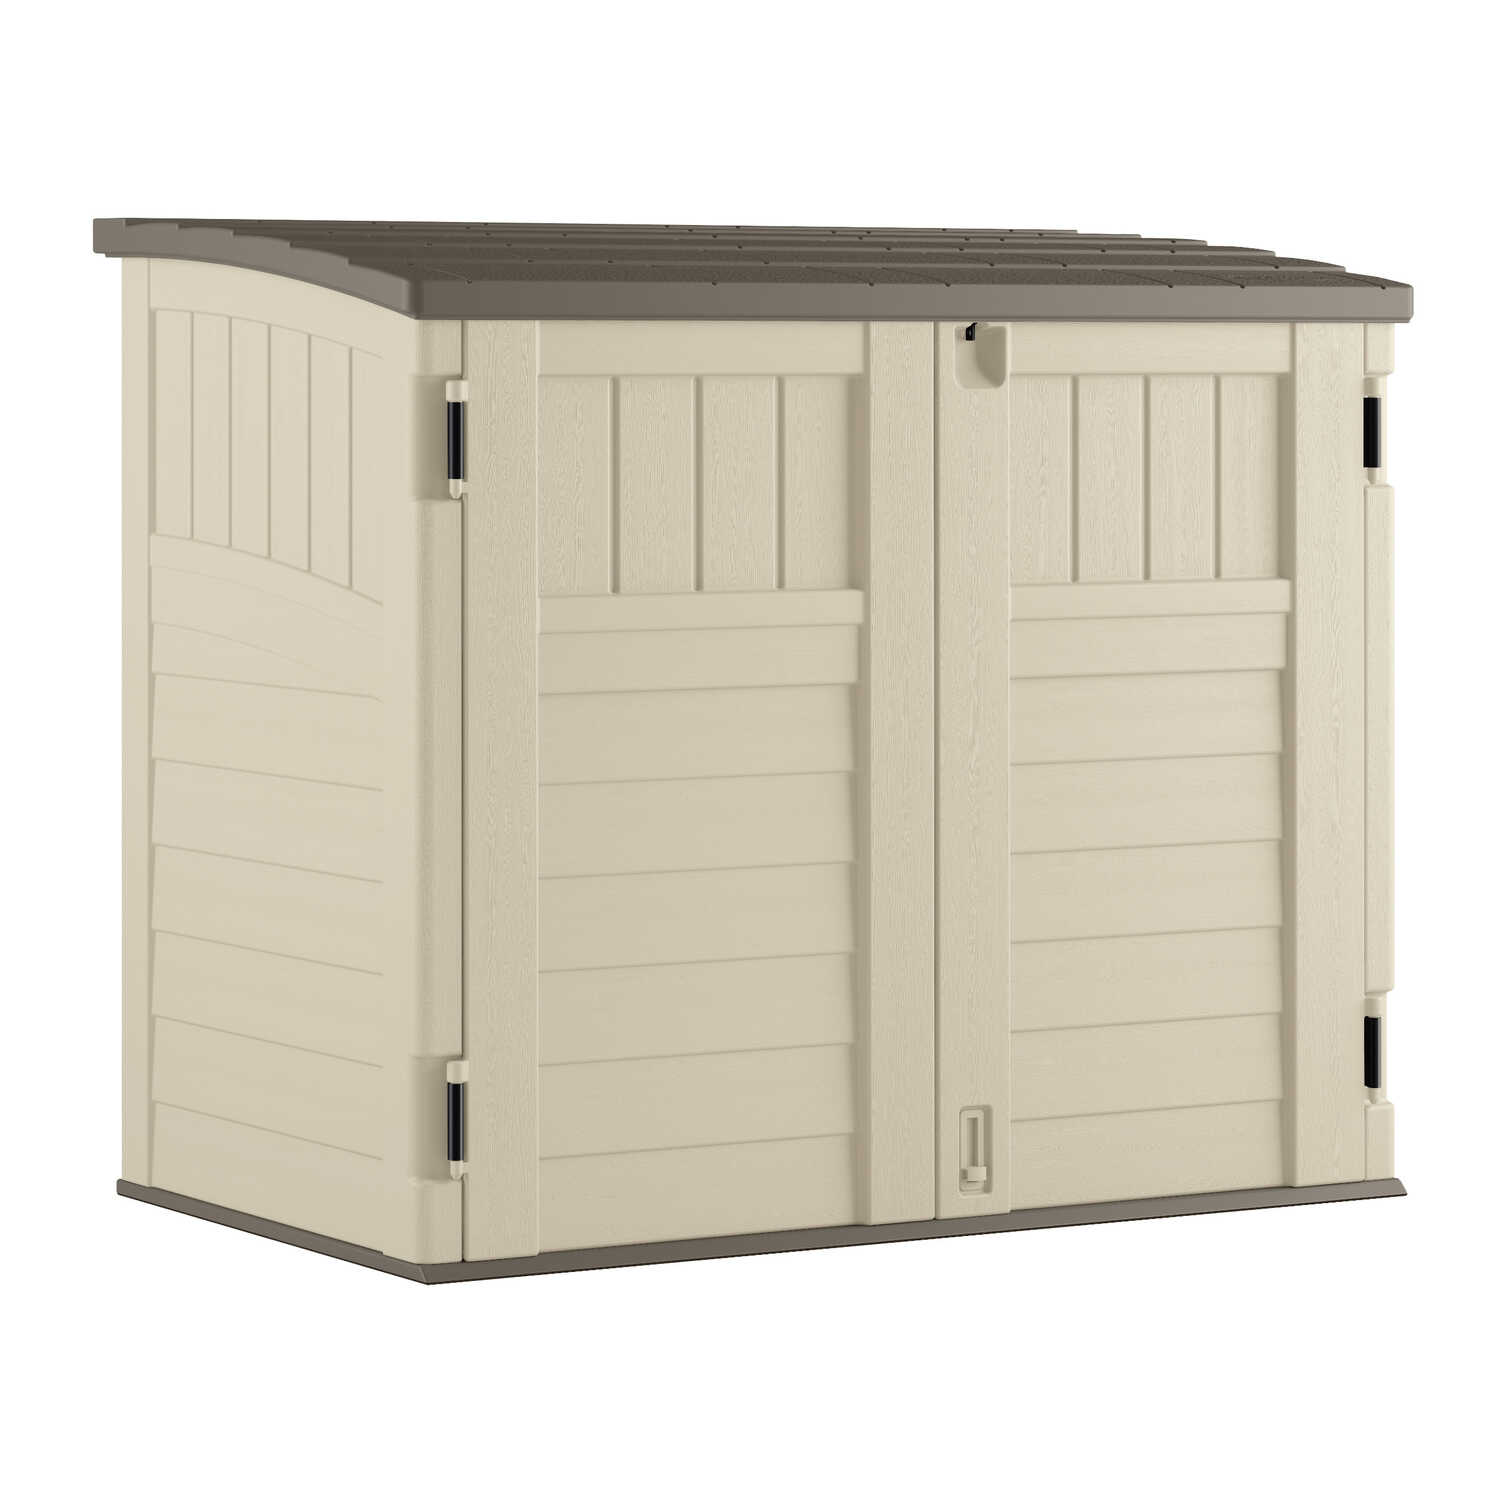 Suncast  3.8 ft. H x 4.5 ft. W x 2.7 ft. D Vanilla  Resin  Horizontal Storage Shed